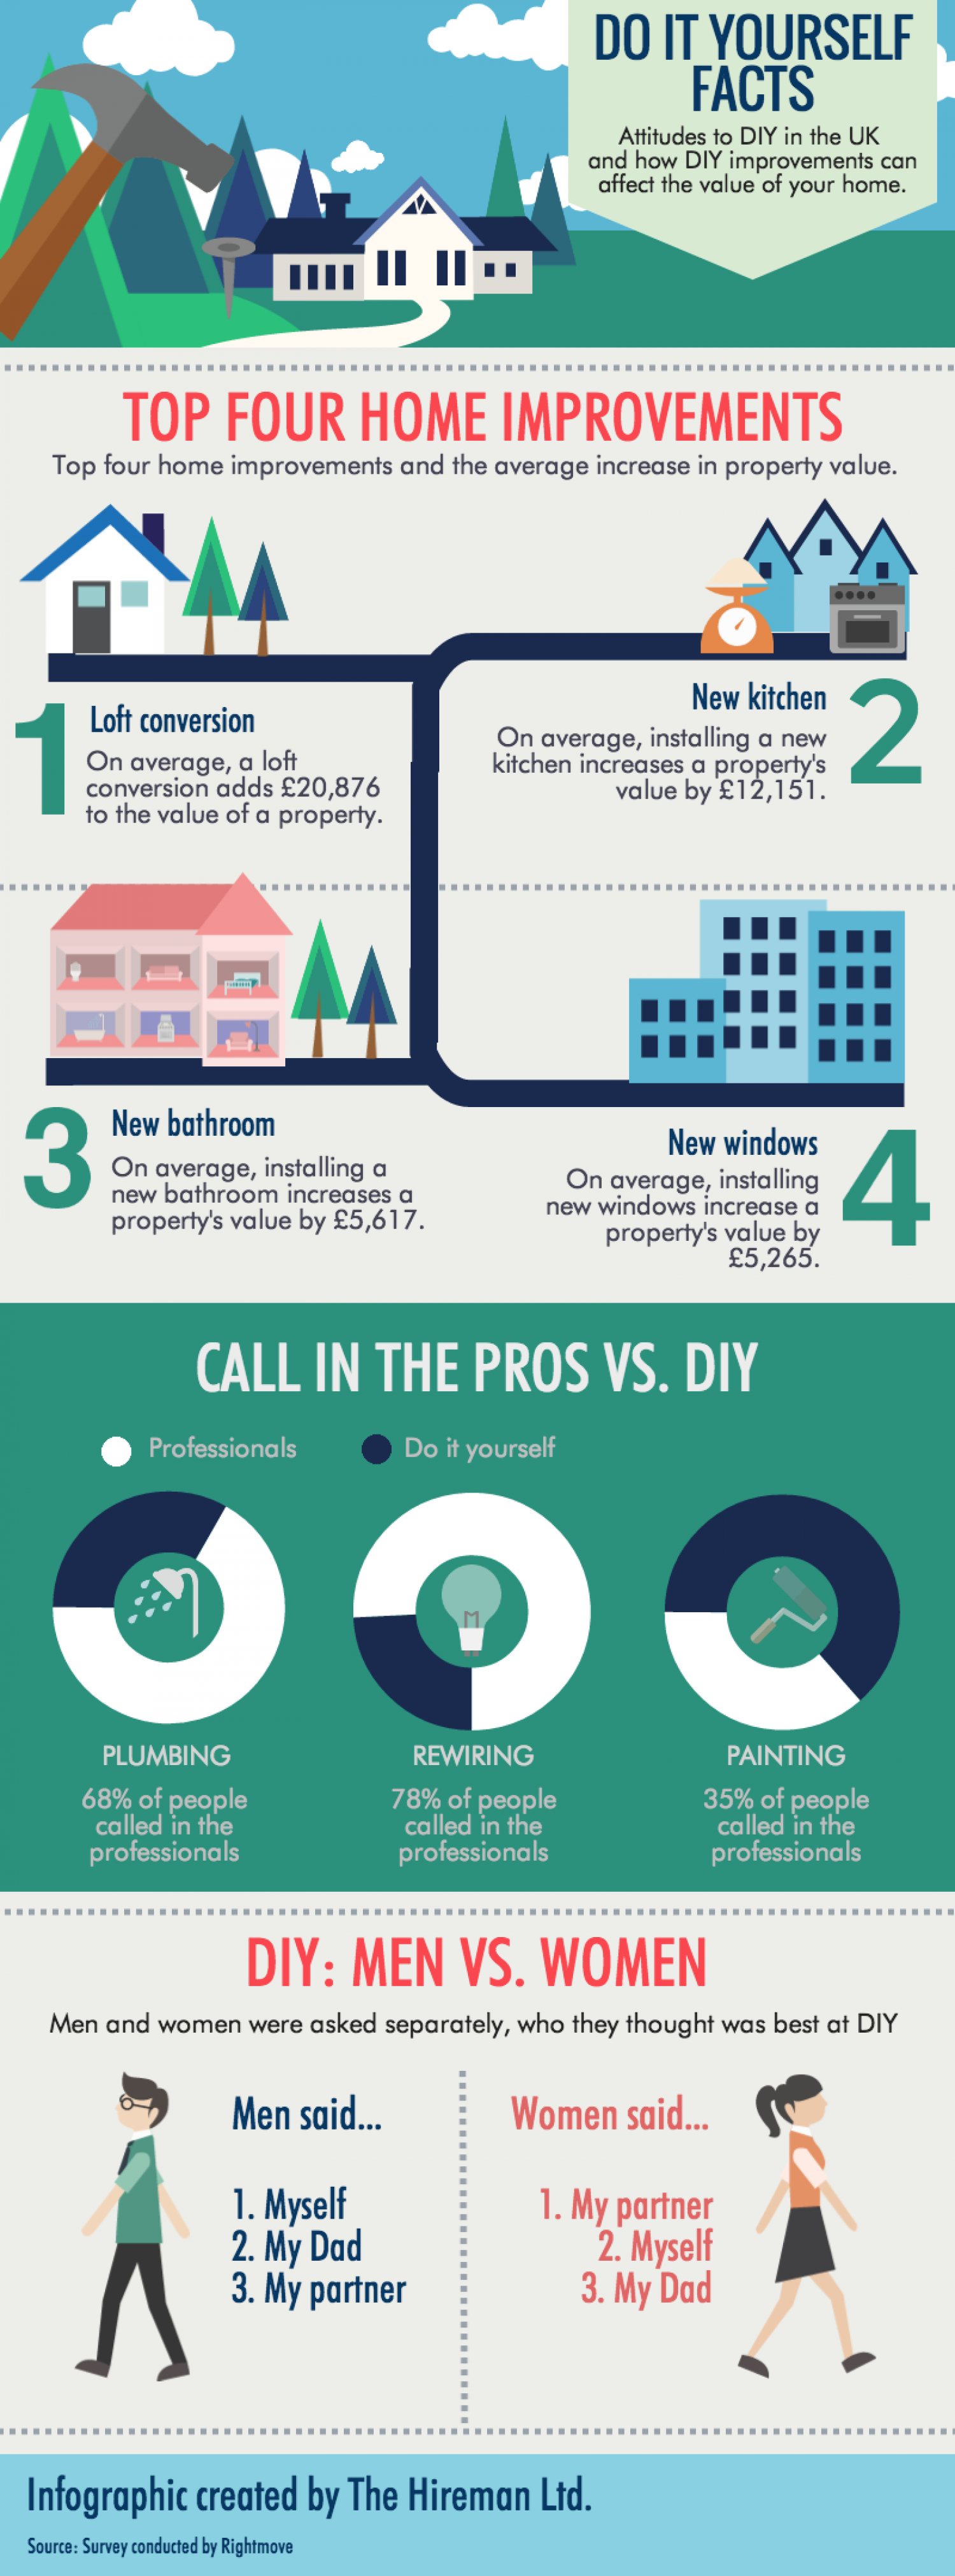 DIY Facts in the UK Infographic